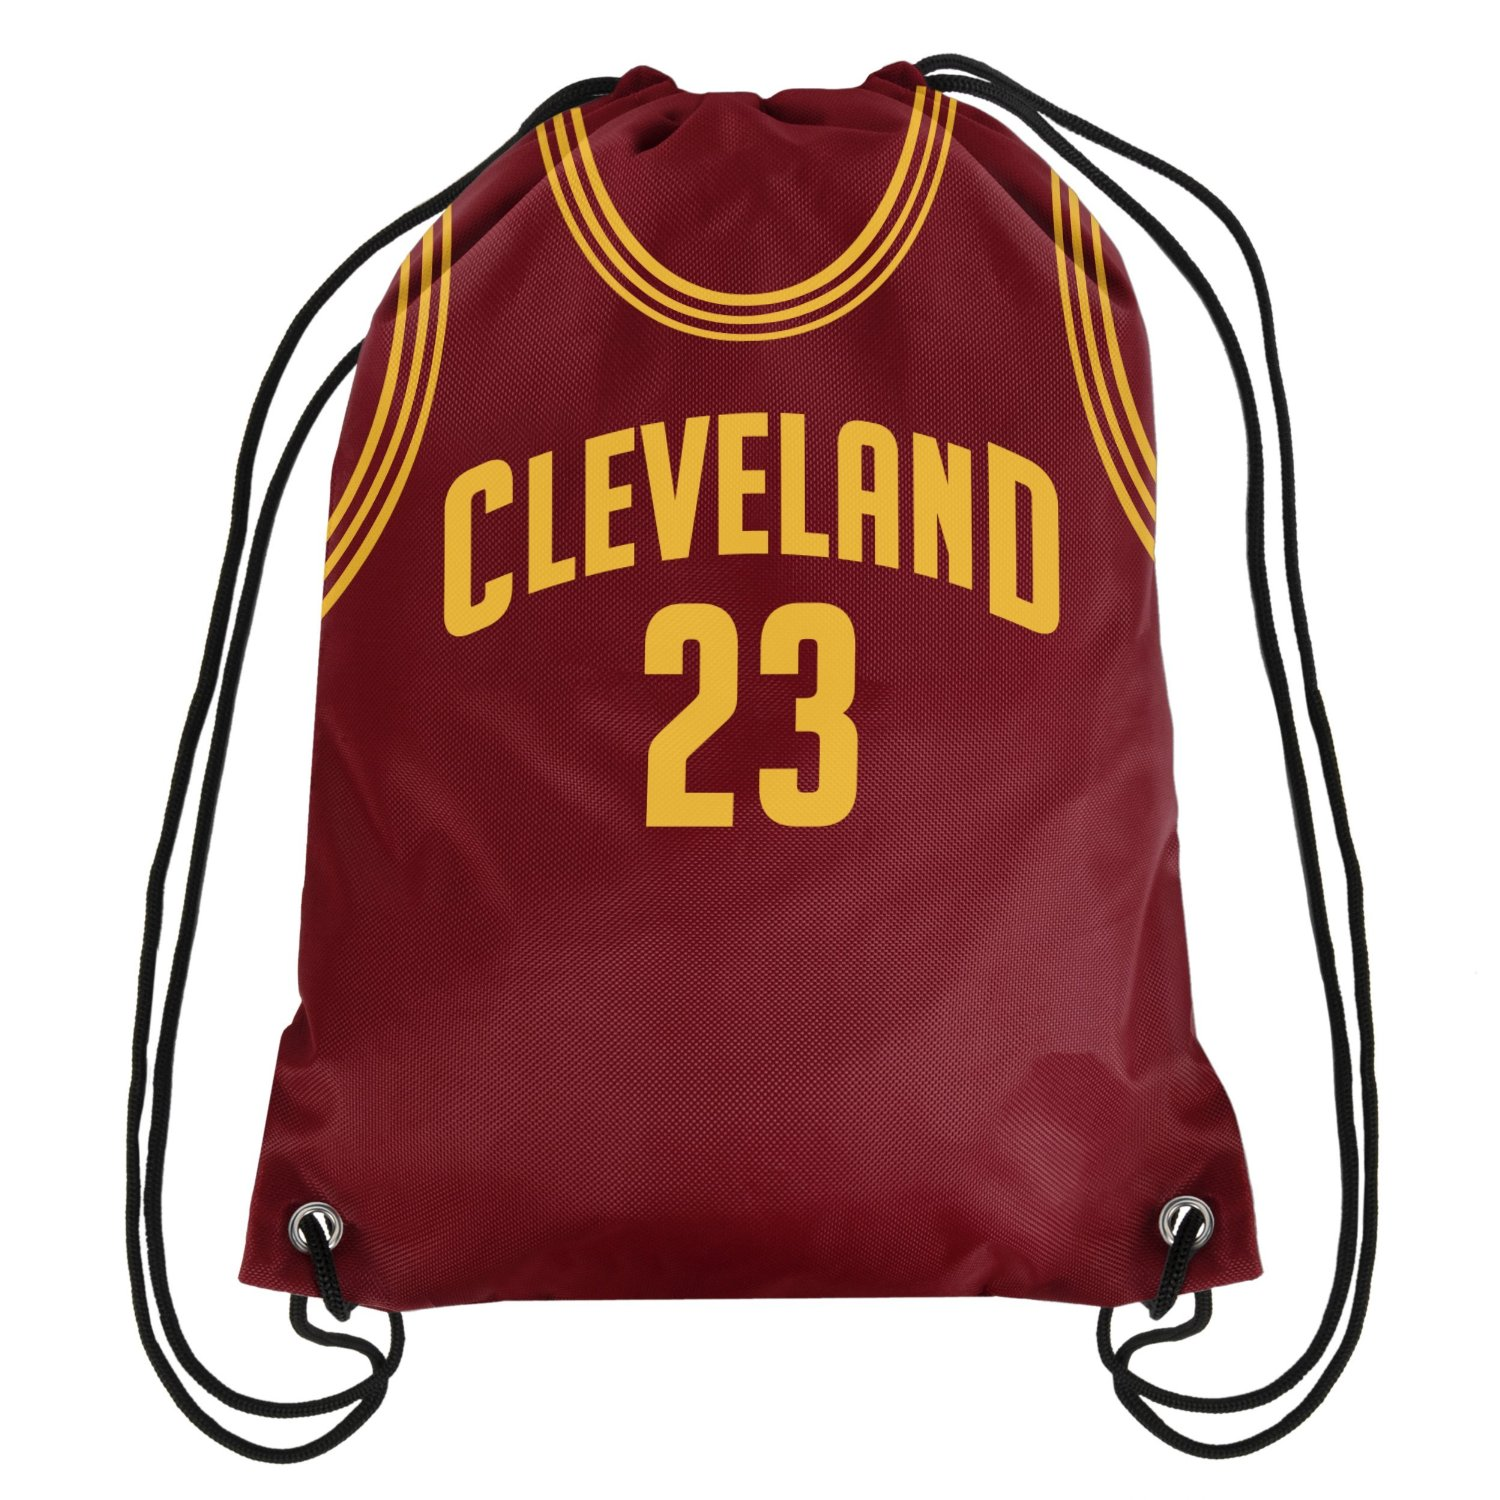 Lebron James Cleveland Cavaliers Jersey Drawstring Backpack